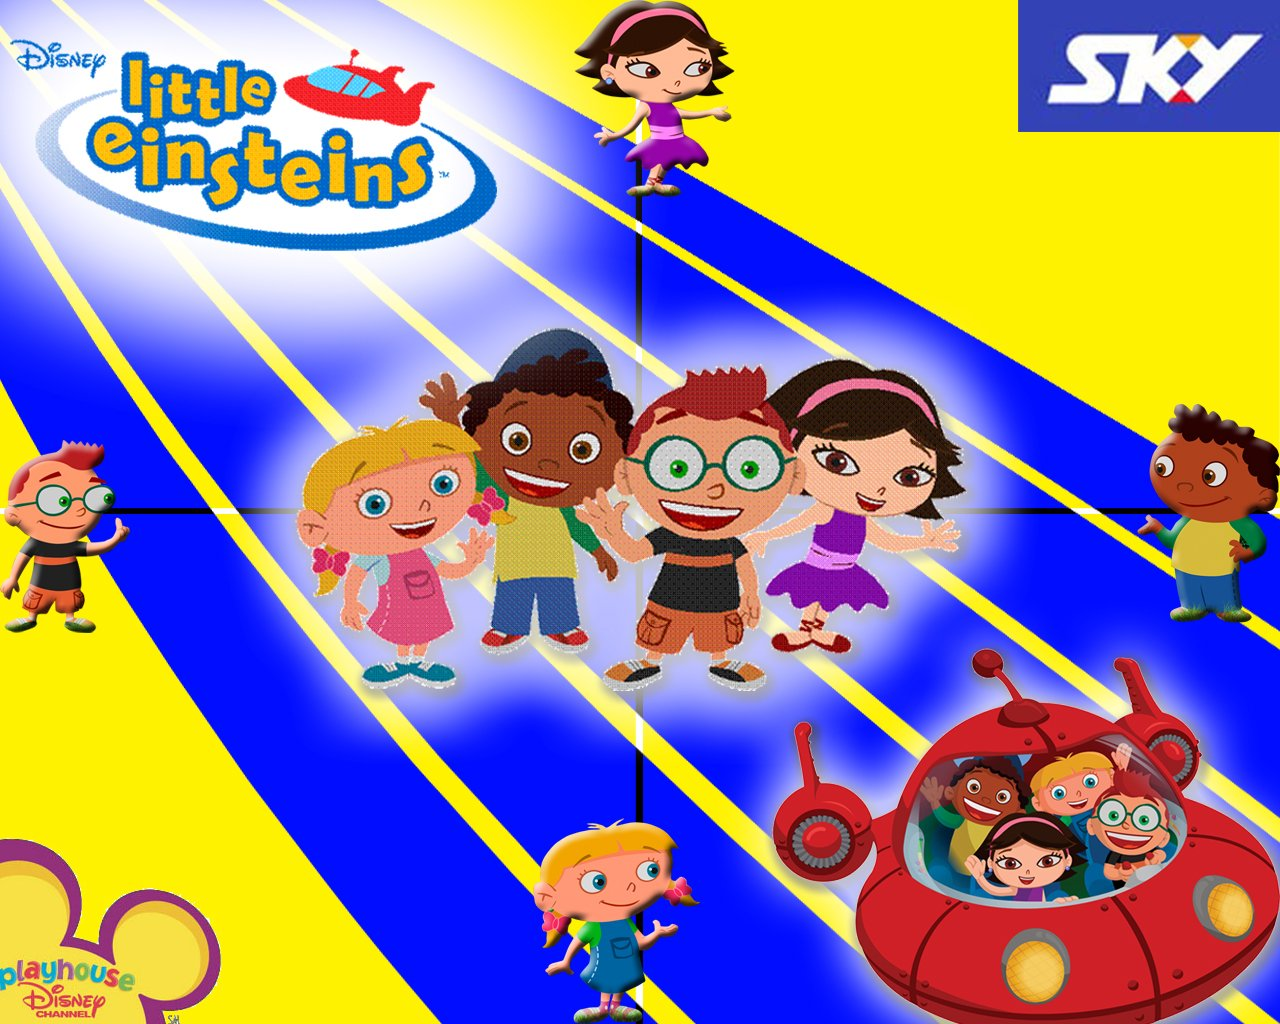 Little Einsteins Wallpaper Wallpapersafari